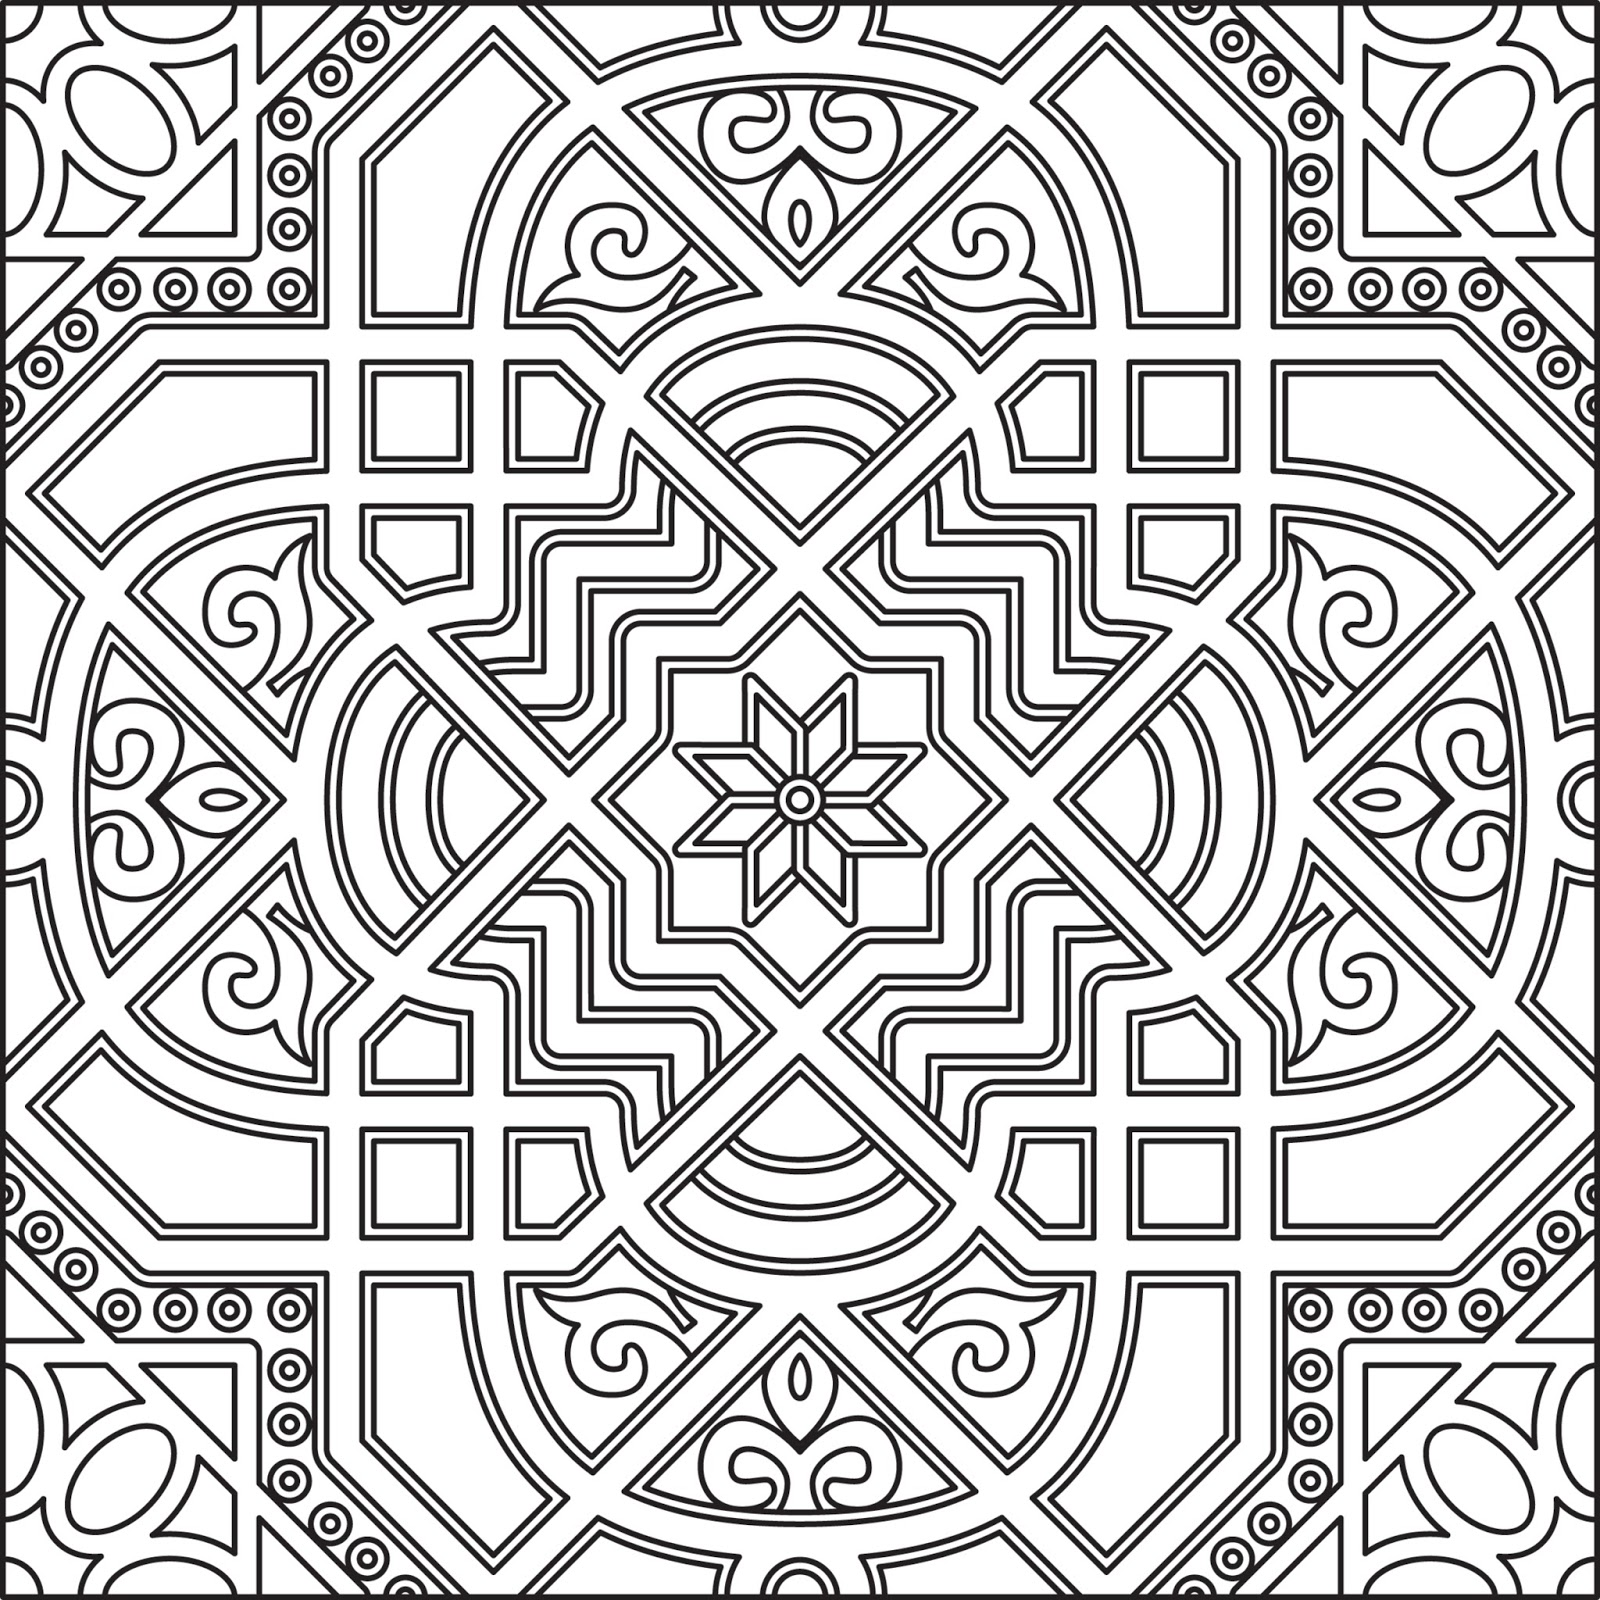 1600x1600 Coloring Pages Islamic Patterns Fresh Black And White Islamic Art